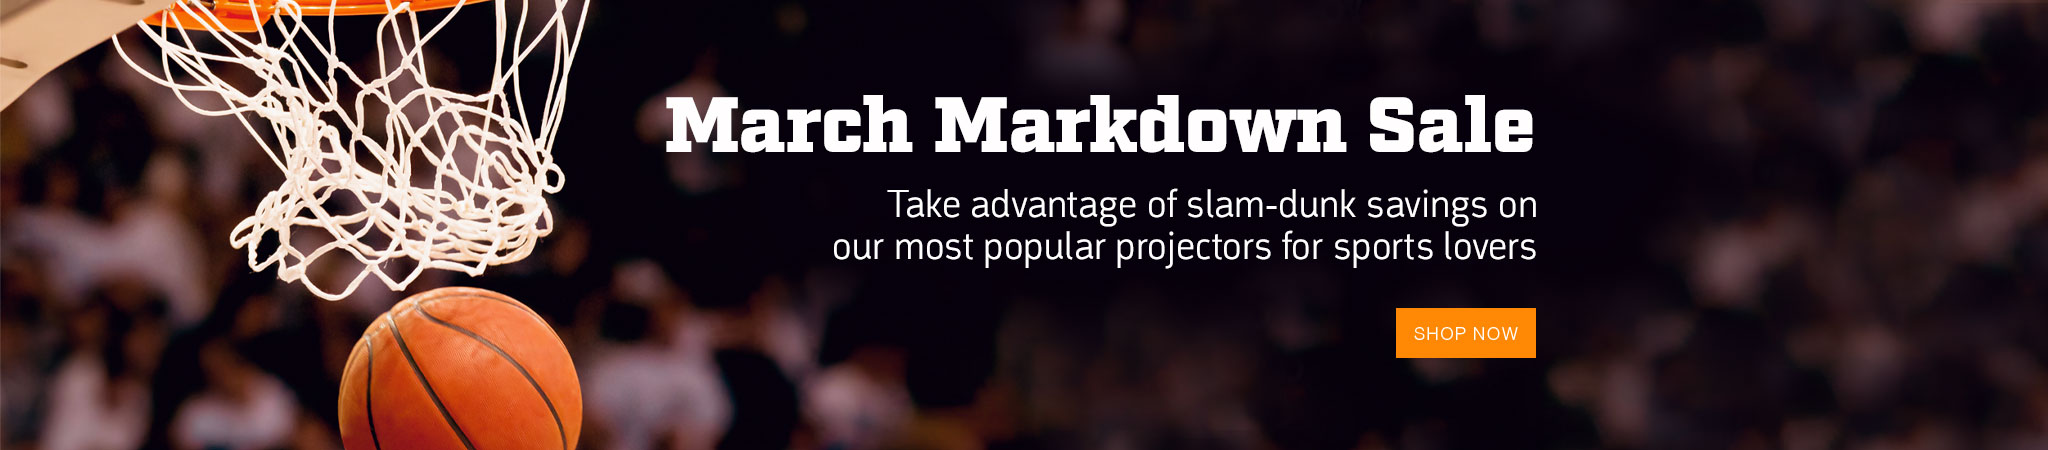 Shop Projector People's March Markdown Sale and Save